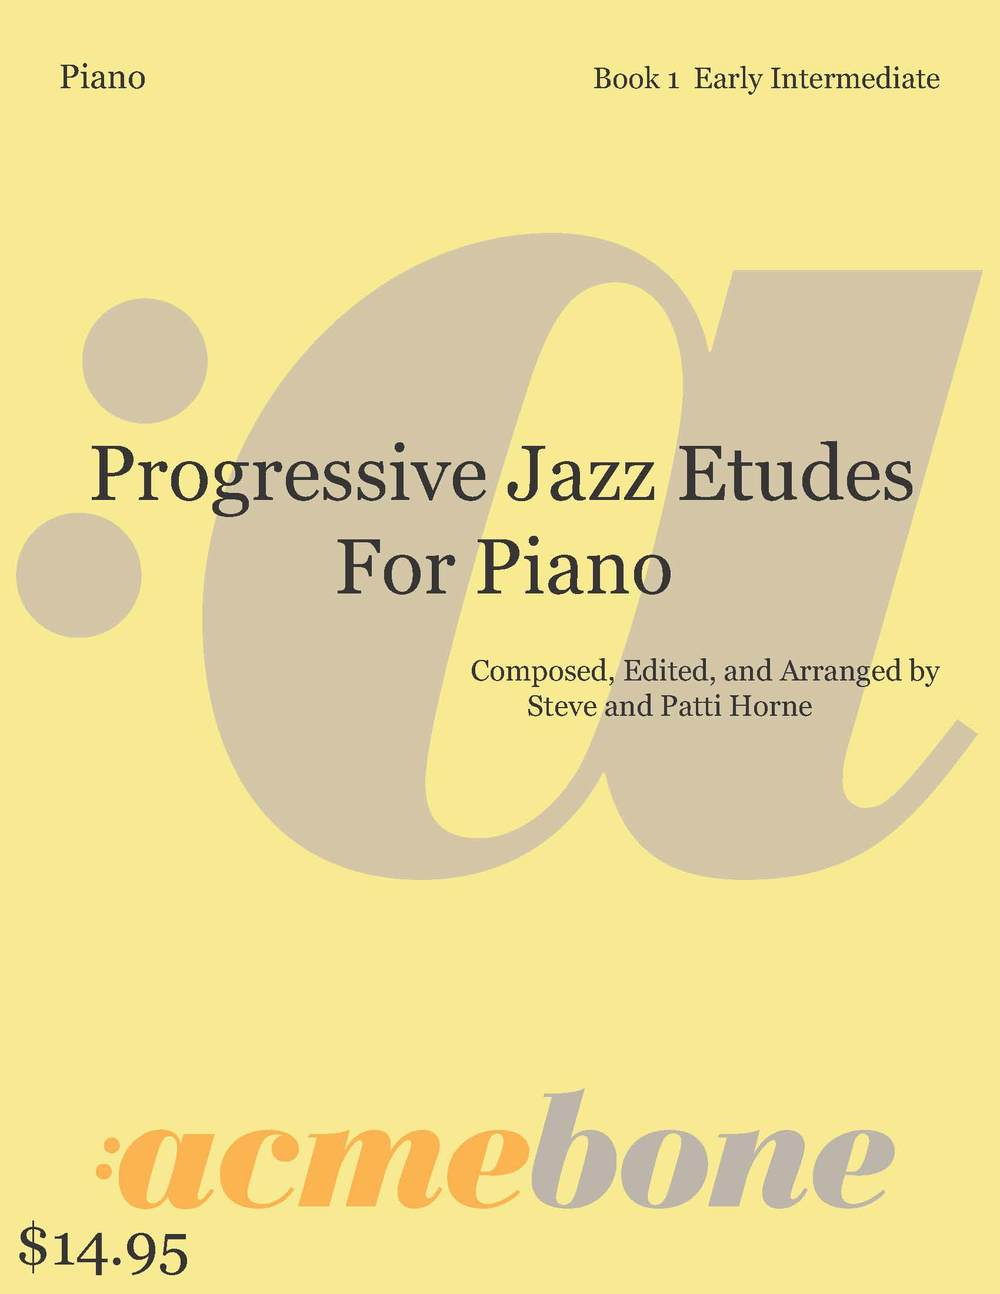 Piano Etudes_cover_book1_price.jpg